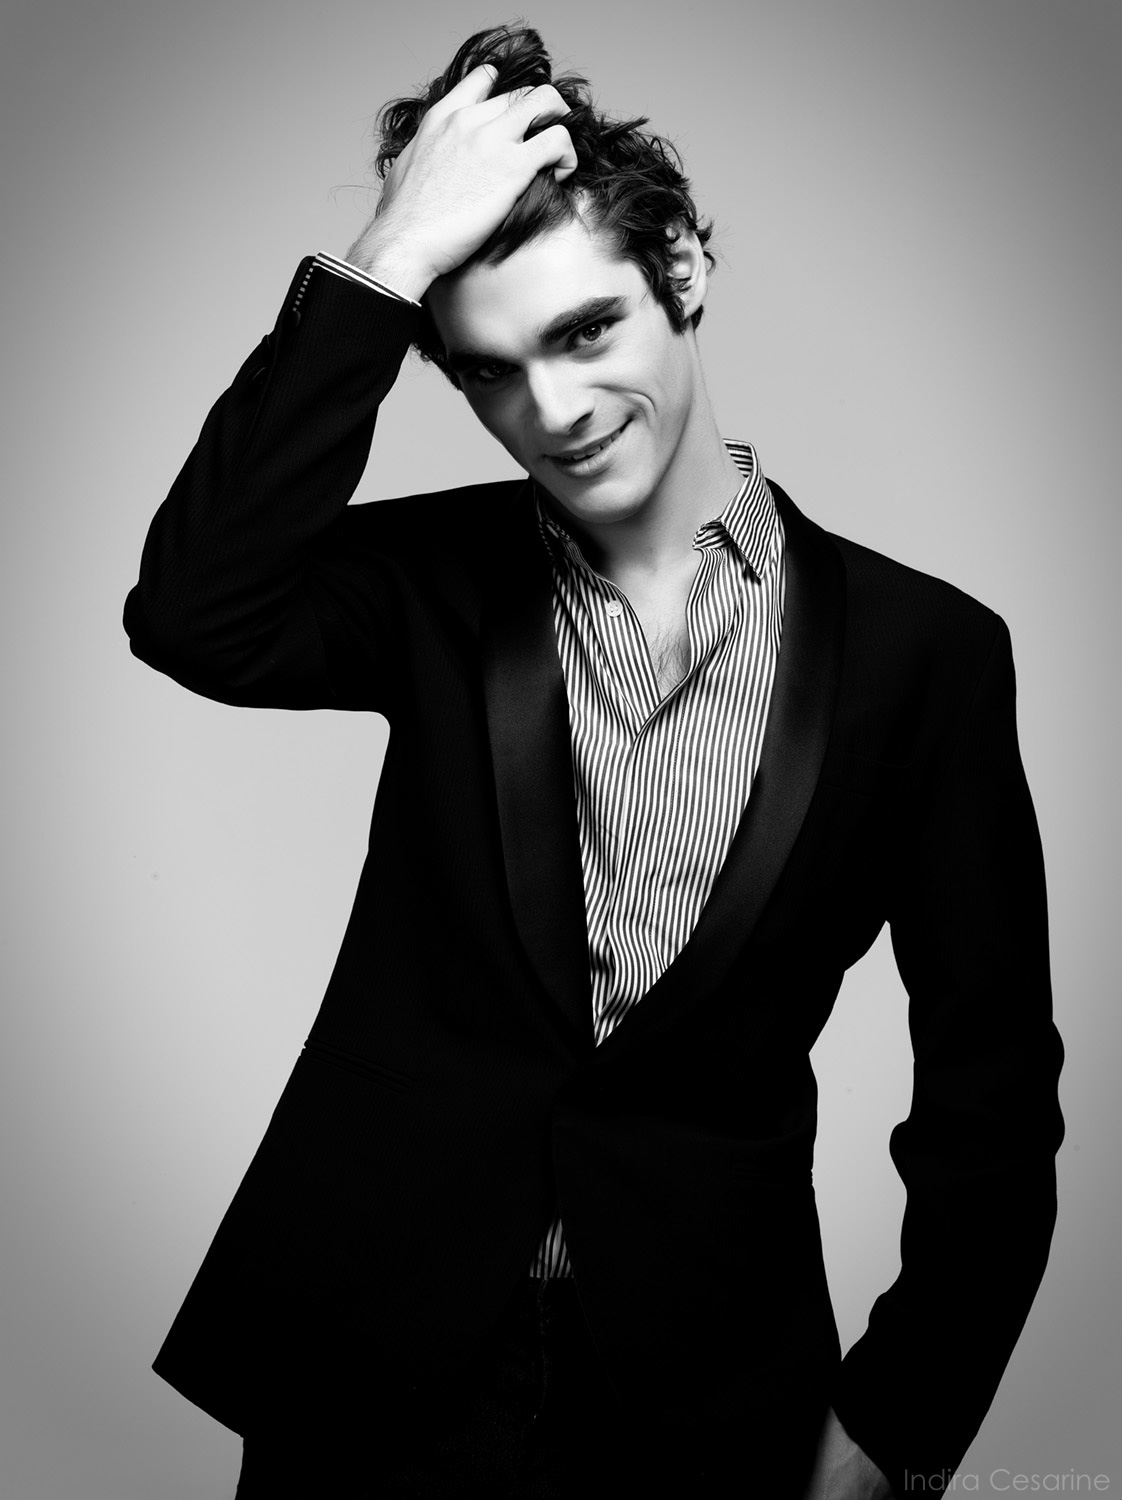 RJ-Mitte-Photography-by-Indira-Cesarine-001.jpg